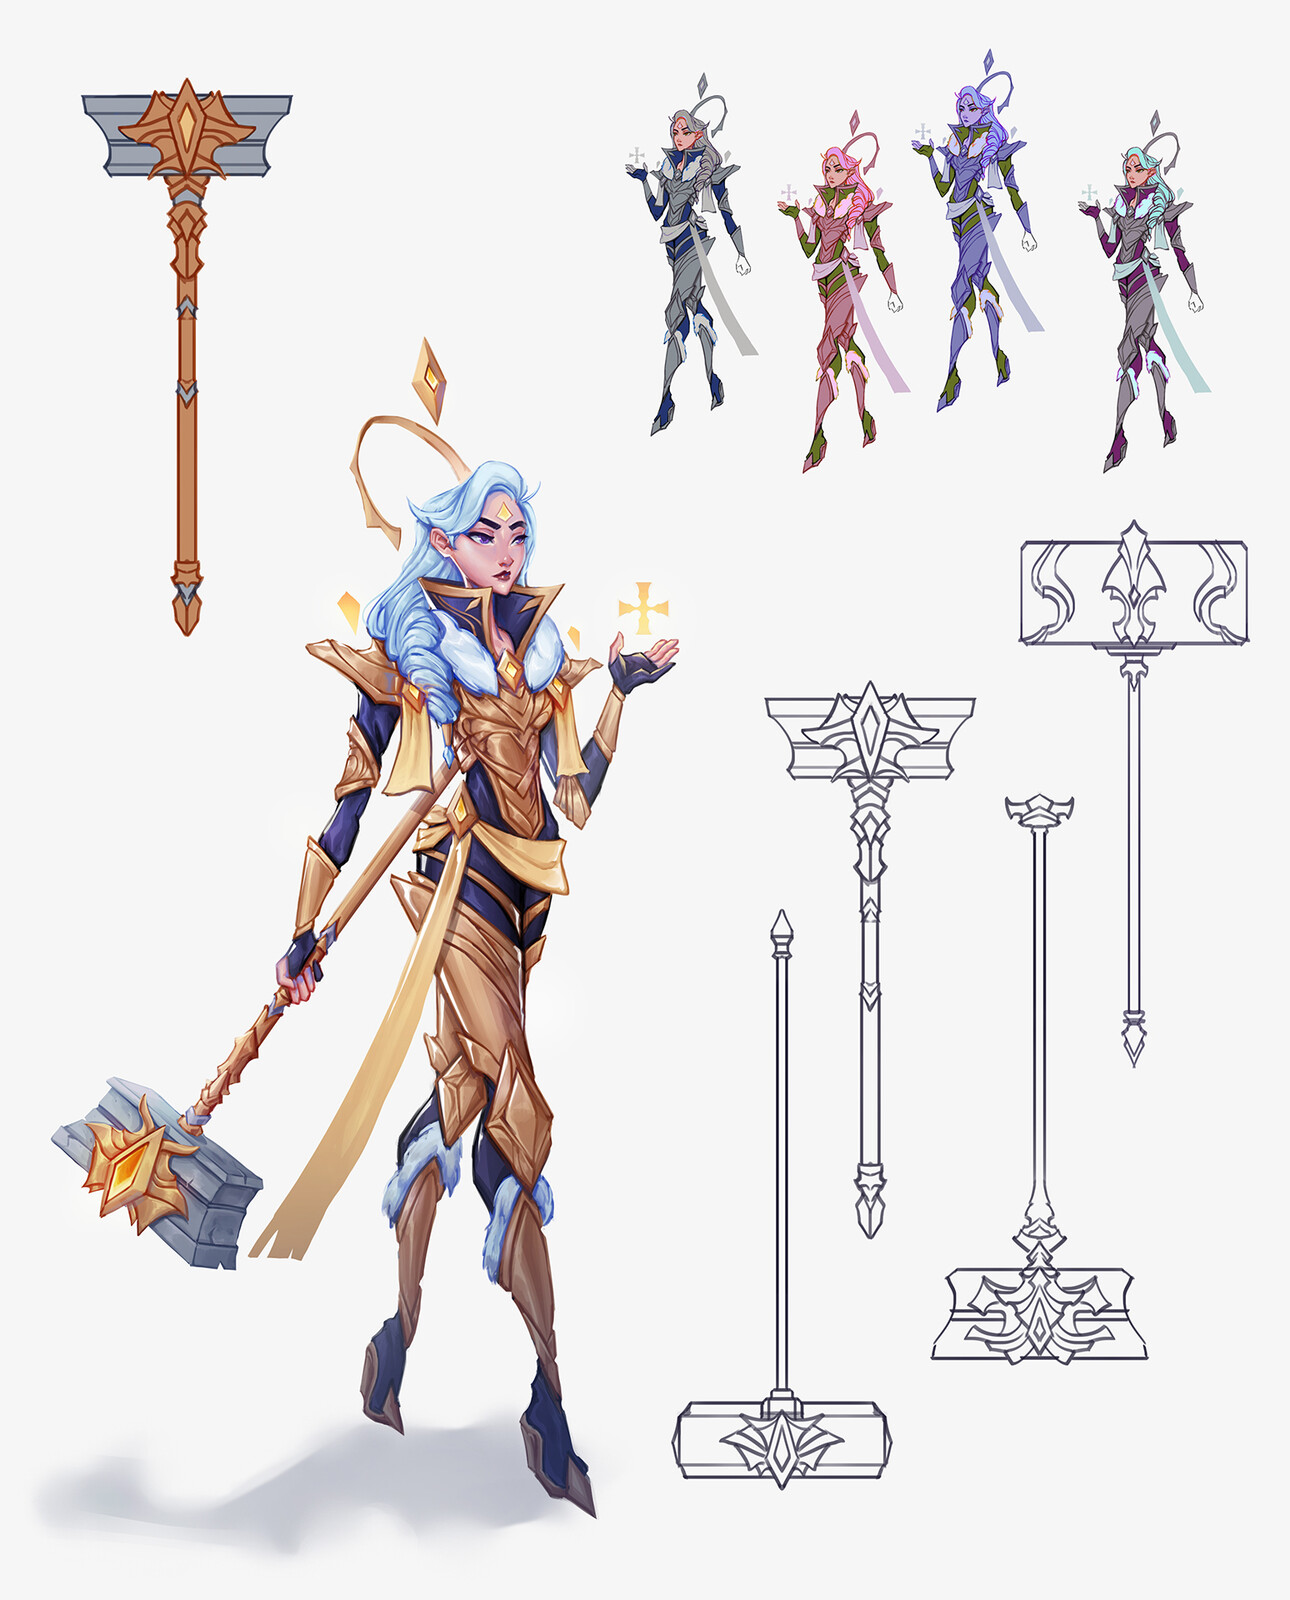 Some color variations, hammer designs, and a flat color version of the final hammer design